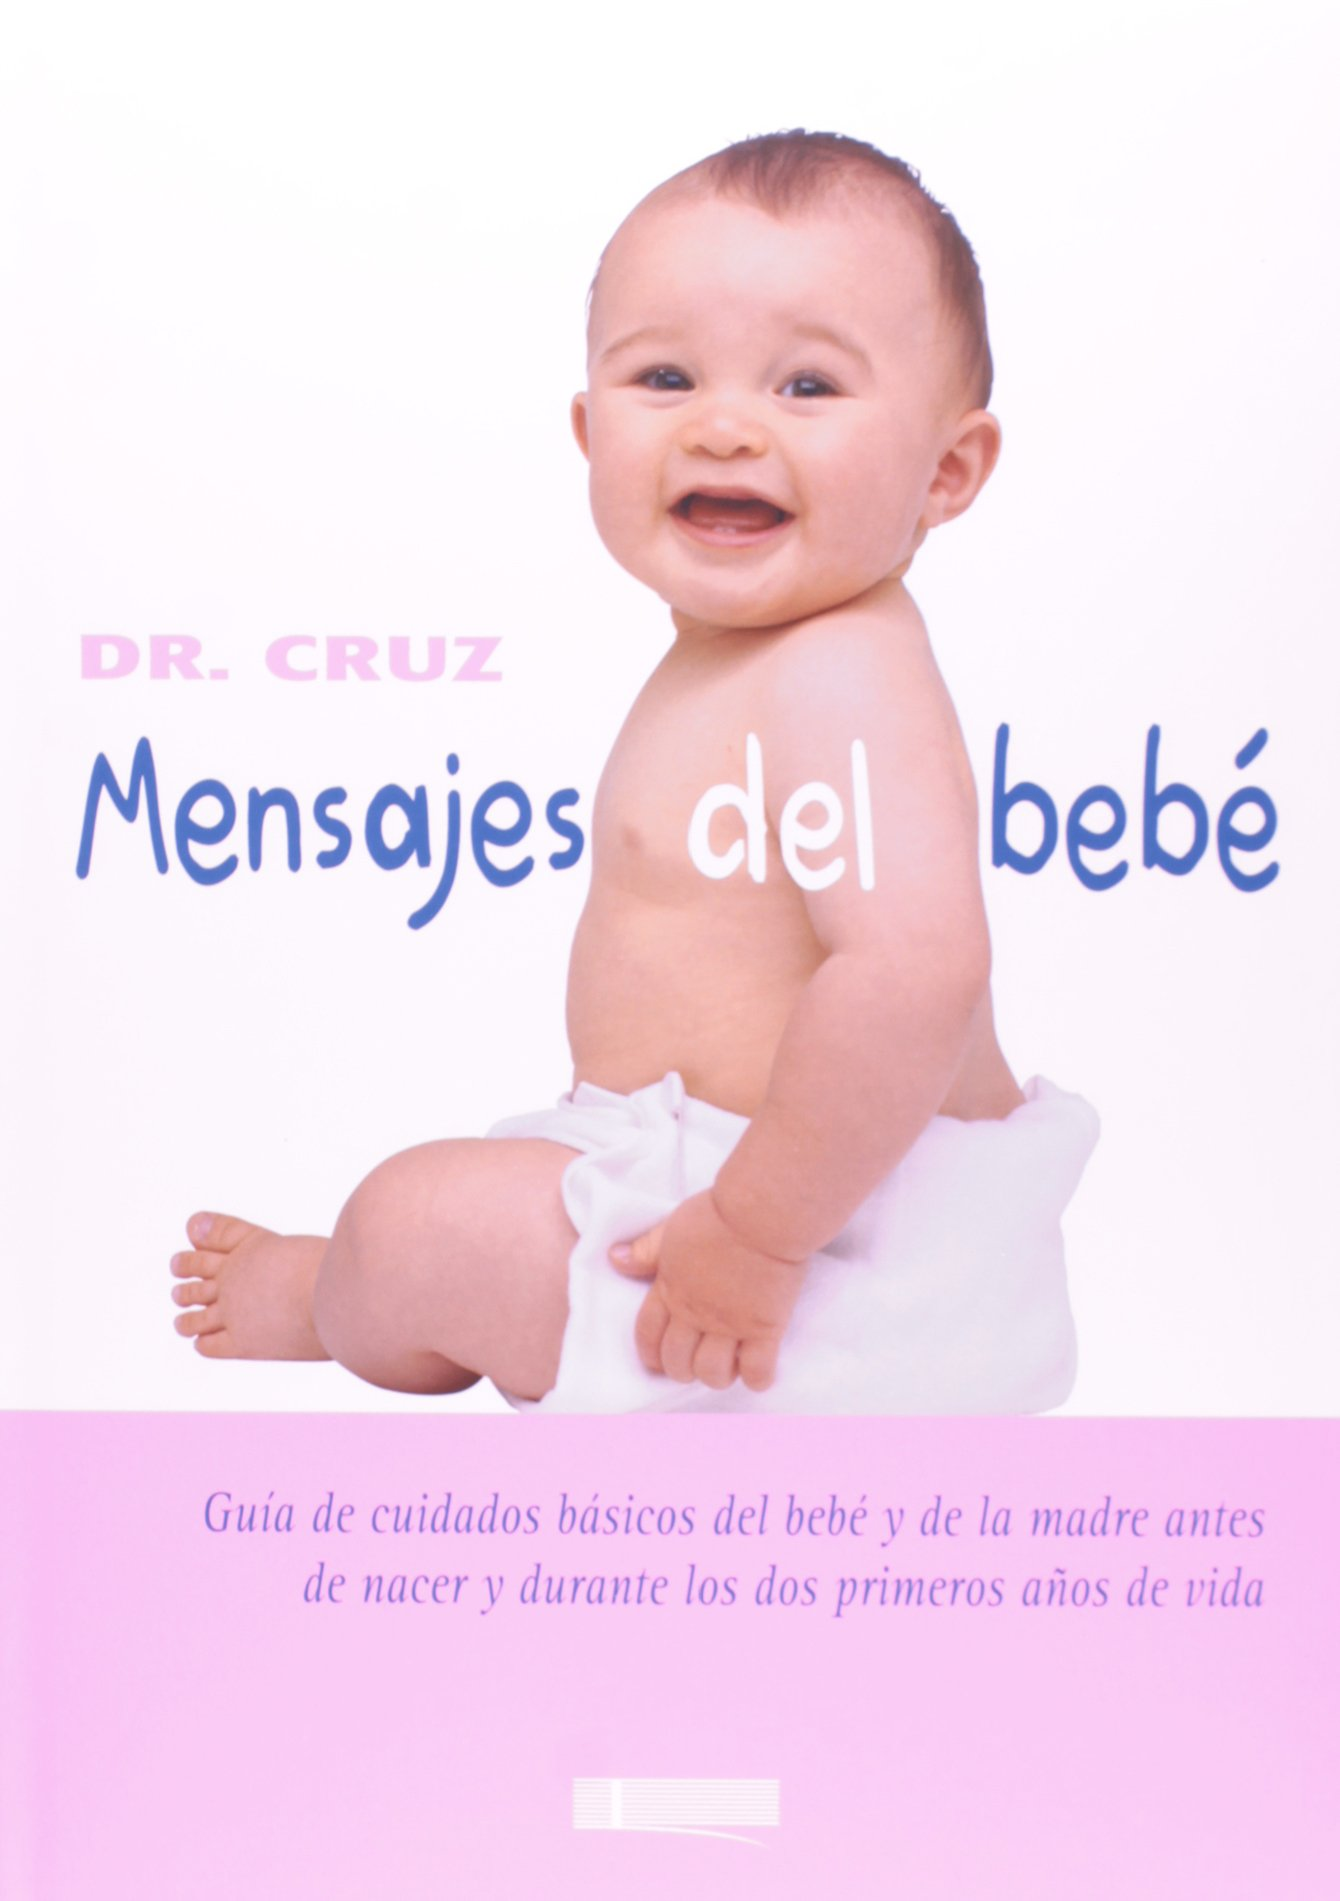 Mensajes del Bebe (Spanish Edition): CRUZ: 9788496449114: Amazon.com: Books